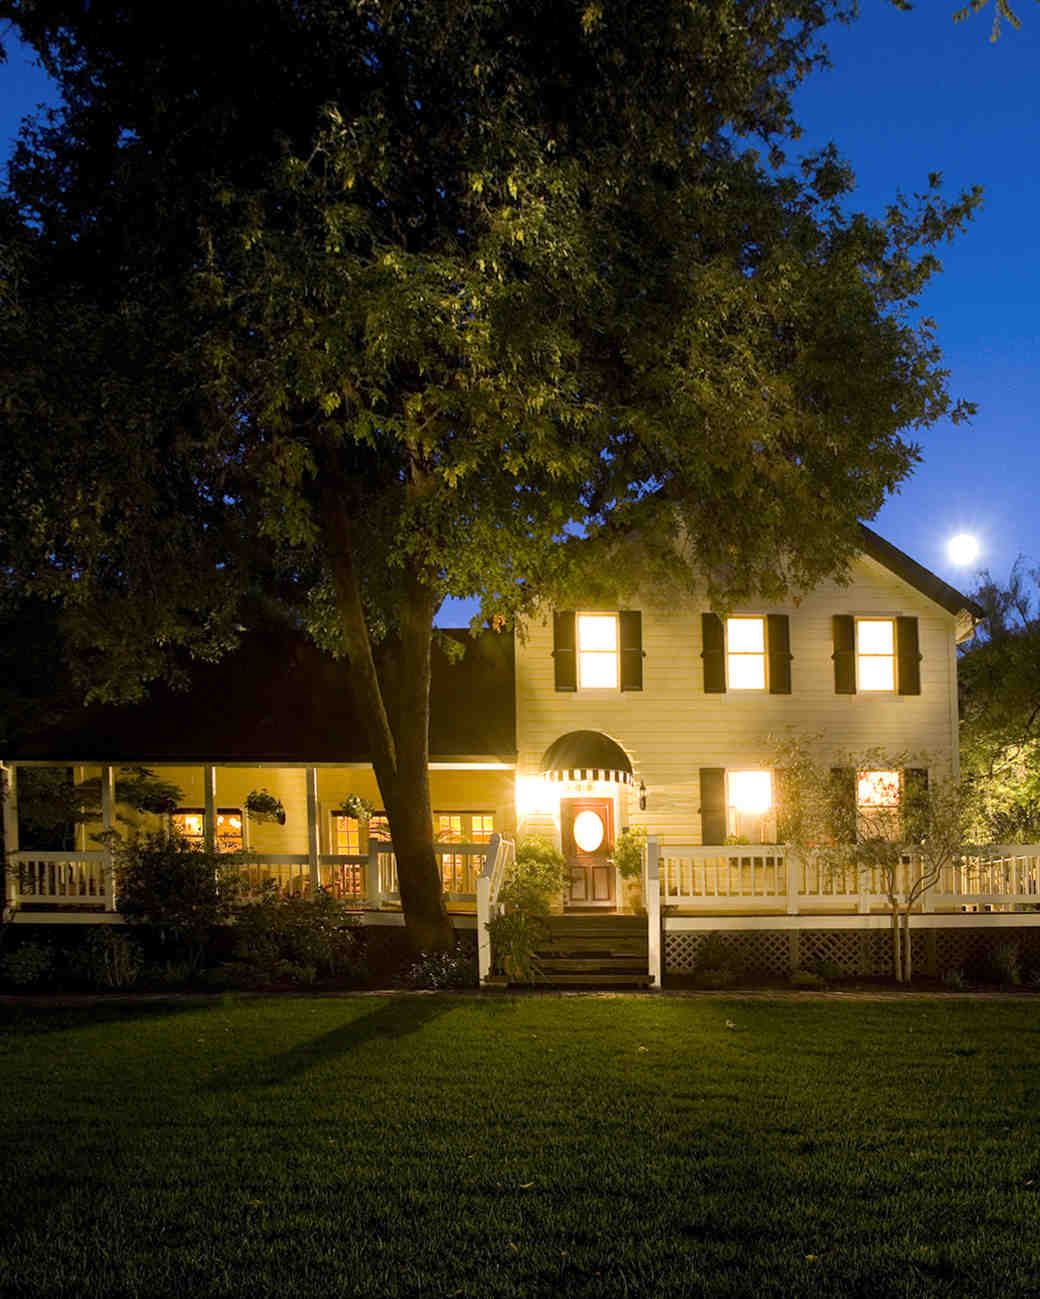 farmhouse-inn-2-mr-mrs-smith-mini-moons.jpg